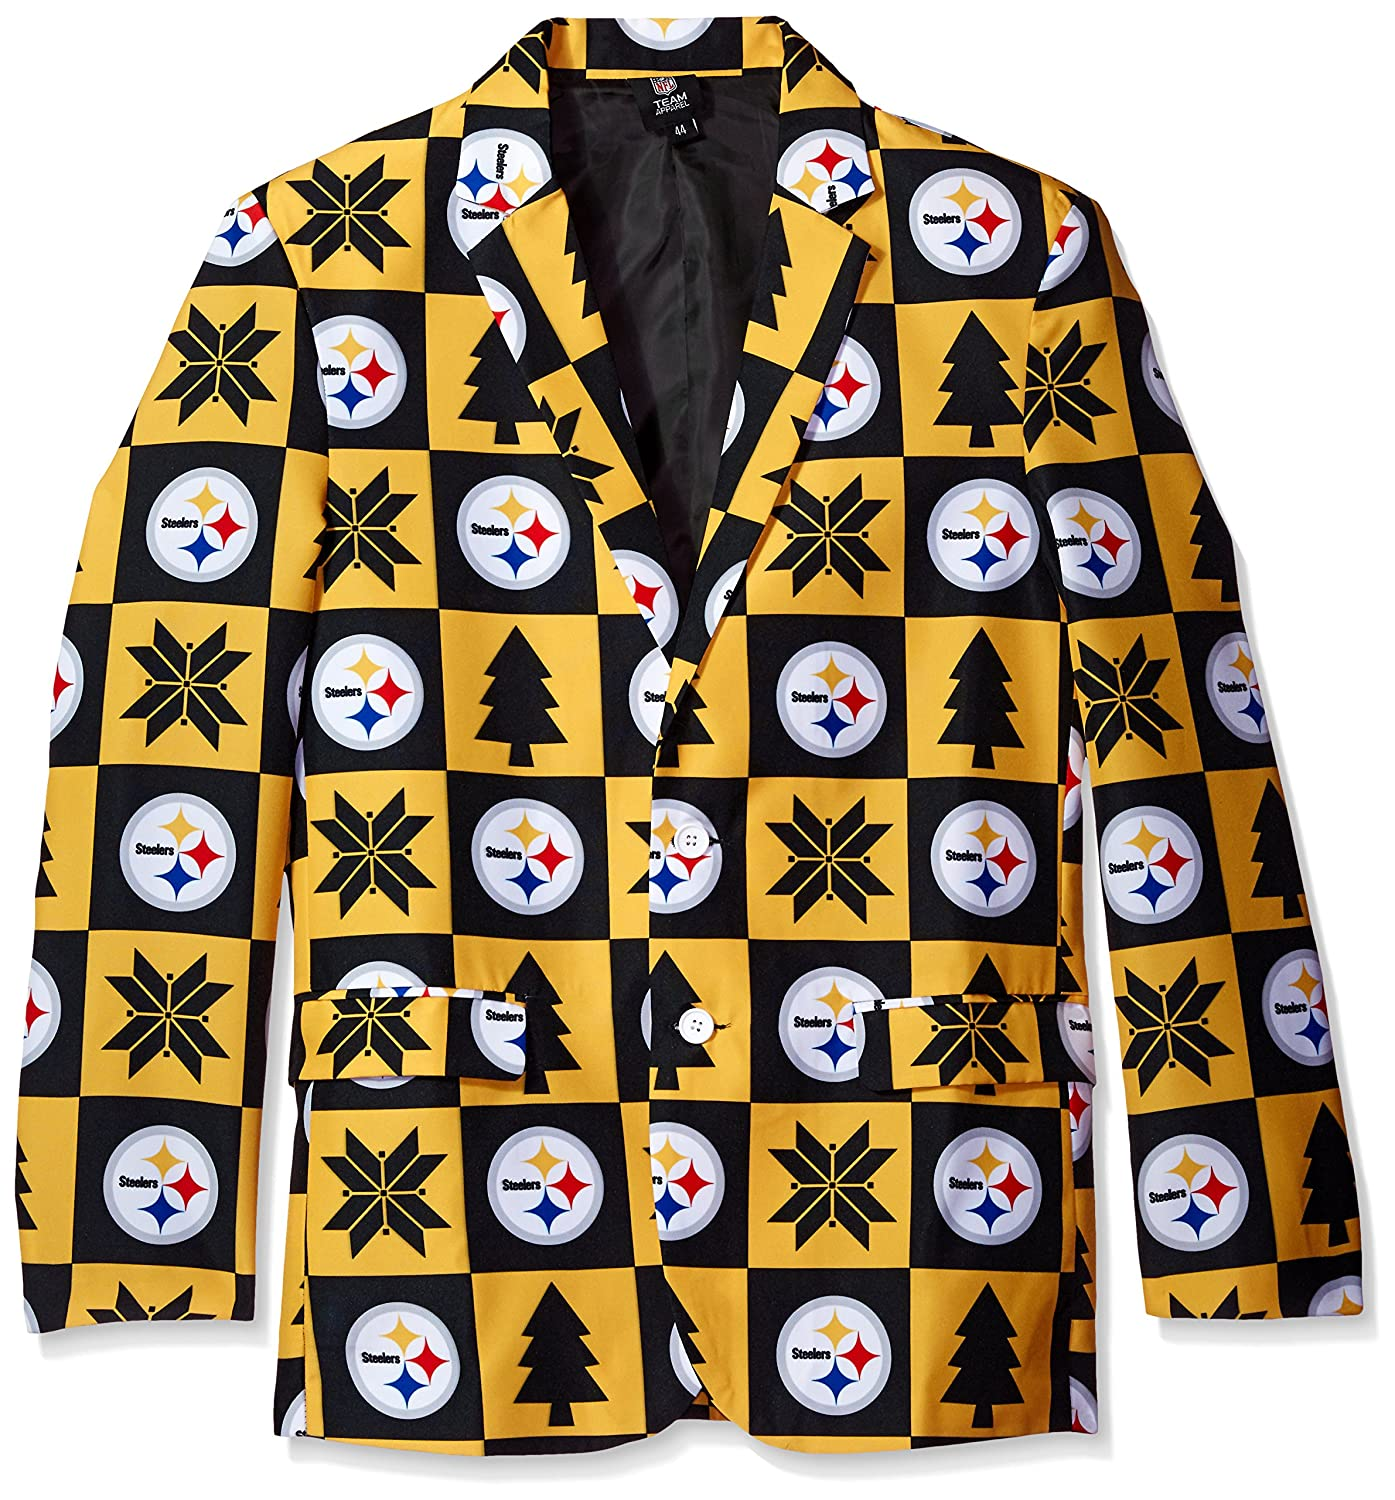 39947b27f4f Amazon.com   NFL Patches Business Jacket   Sports   Outdoors